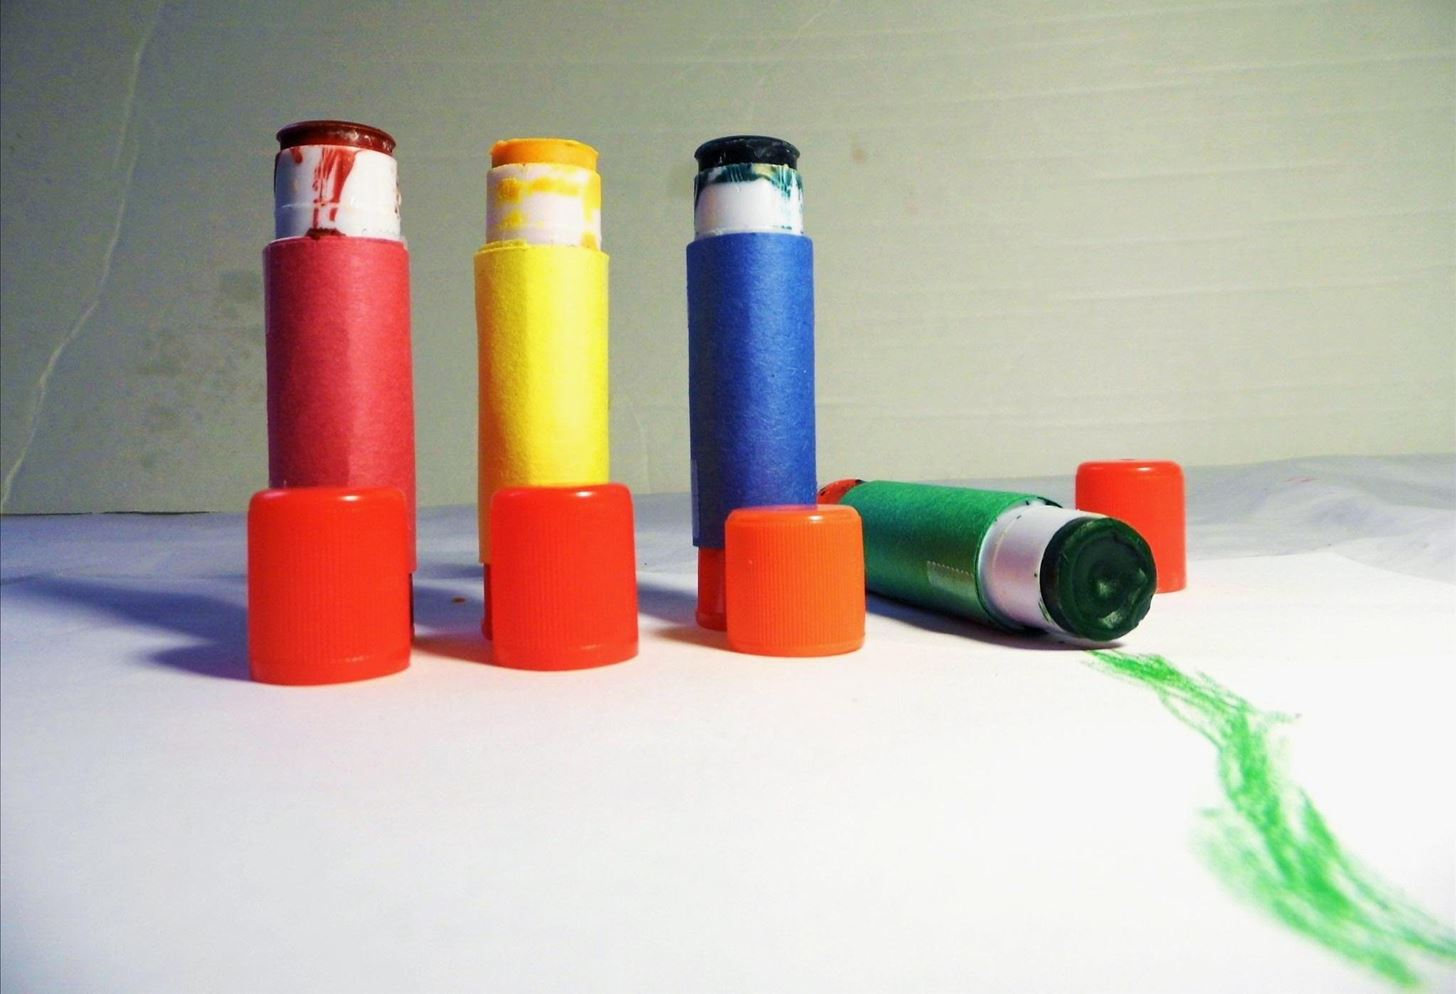 Recycle Your Kid's Crayon Nubs into Bigger, Cleaner Pushup Crayons